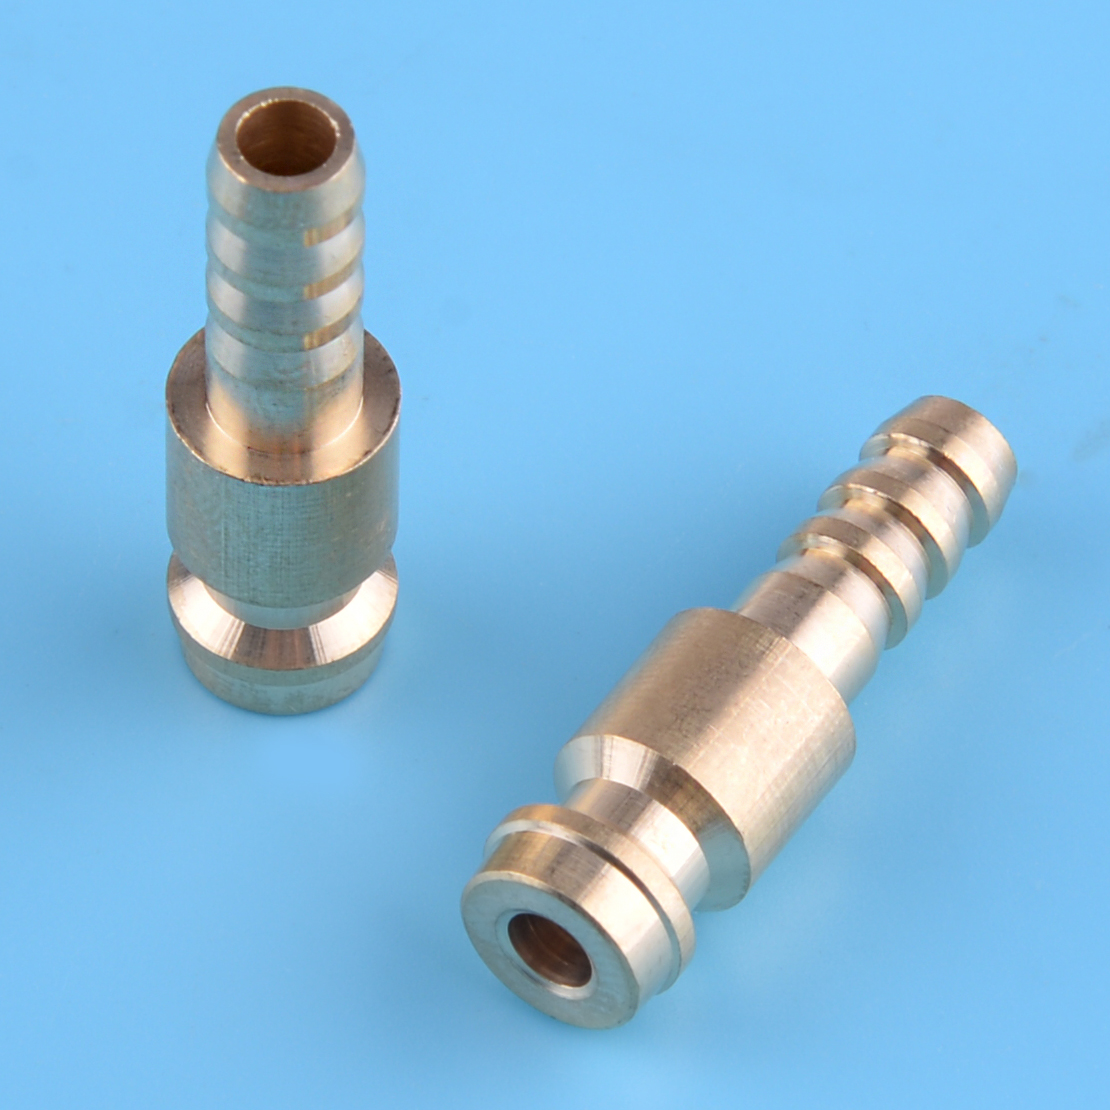 LETAOSK 2pcs 6mm Gold Dia. Gas & Water Male Adapter Quick Connector Replacement For TIG Welding Torch Intake